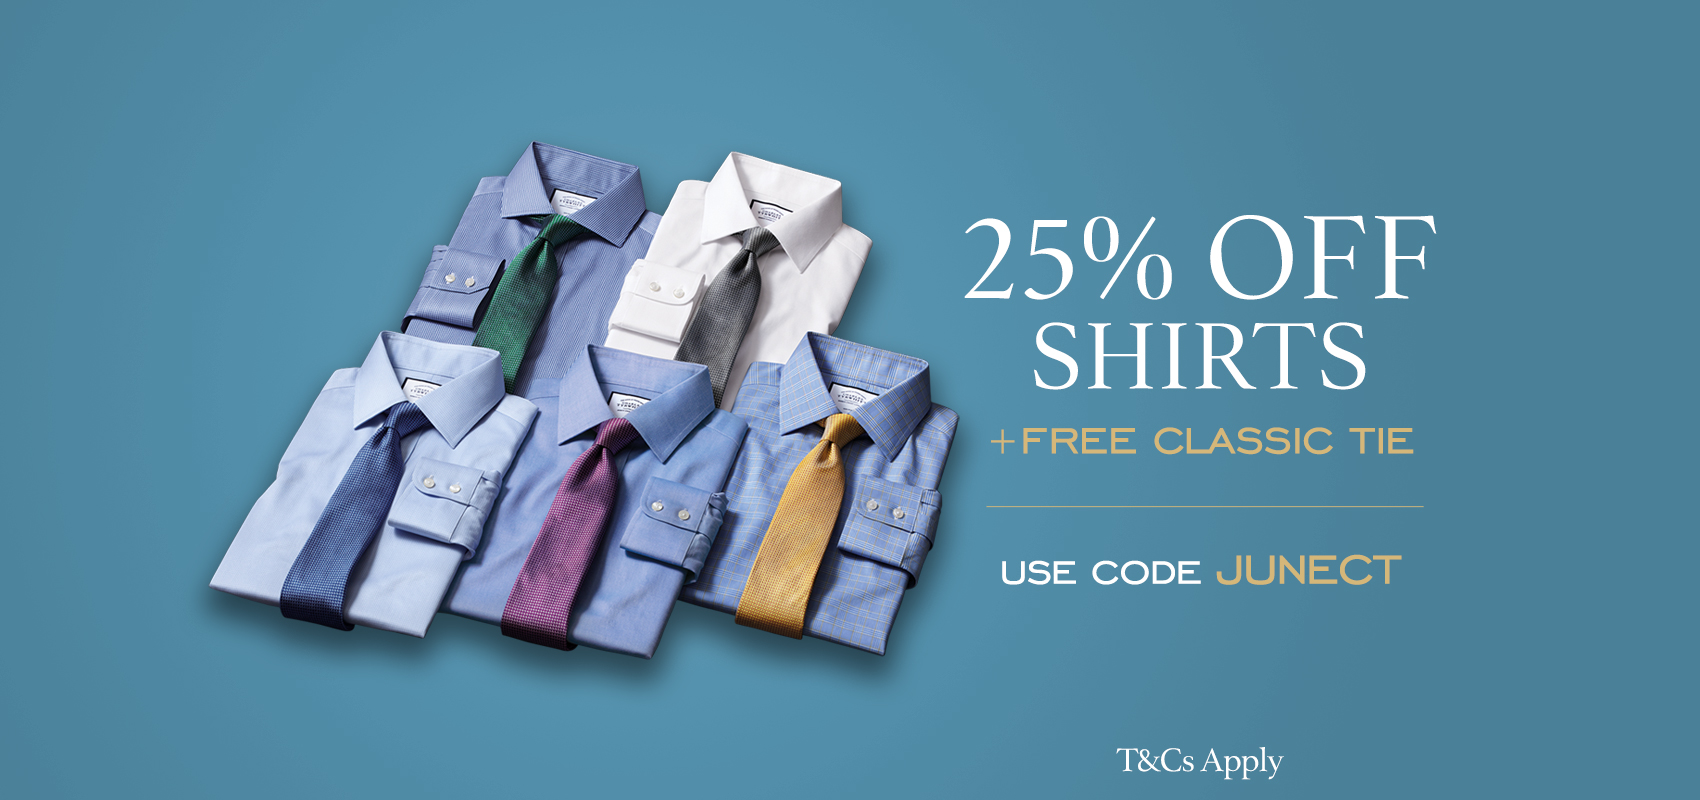 Charles Tyrwhitt 25% off shirts and a free classic tie